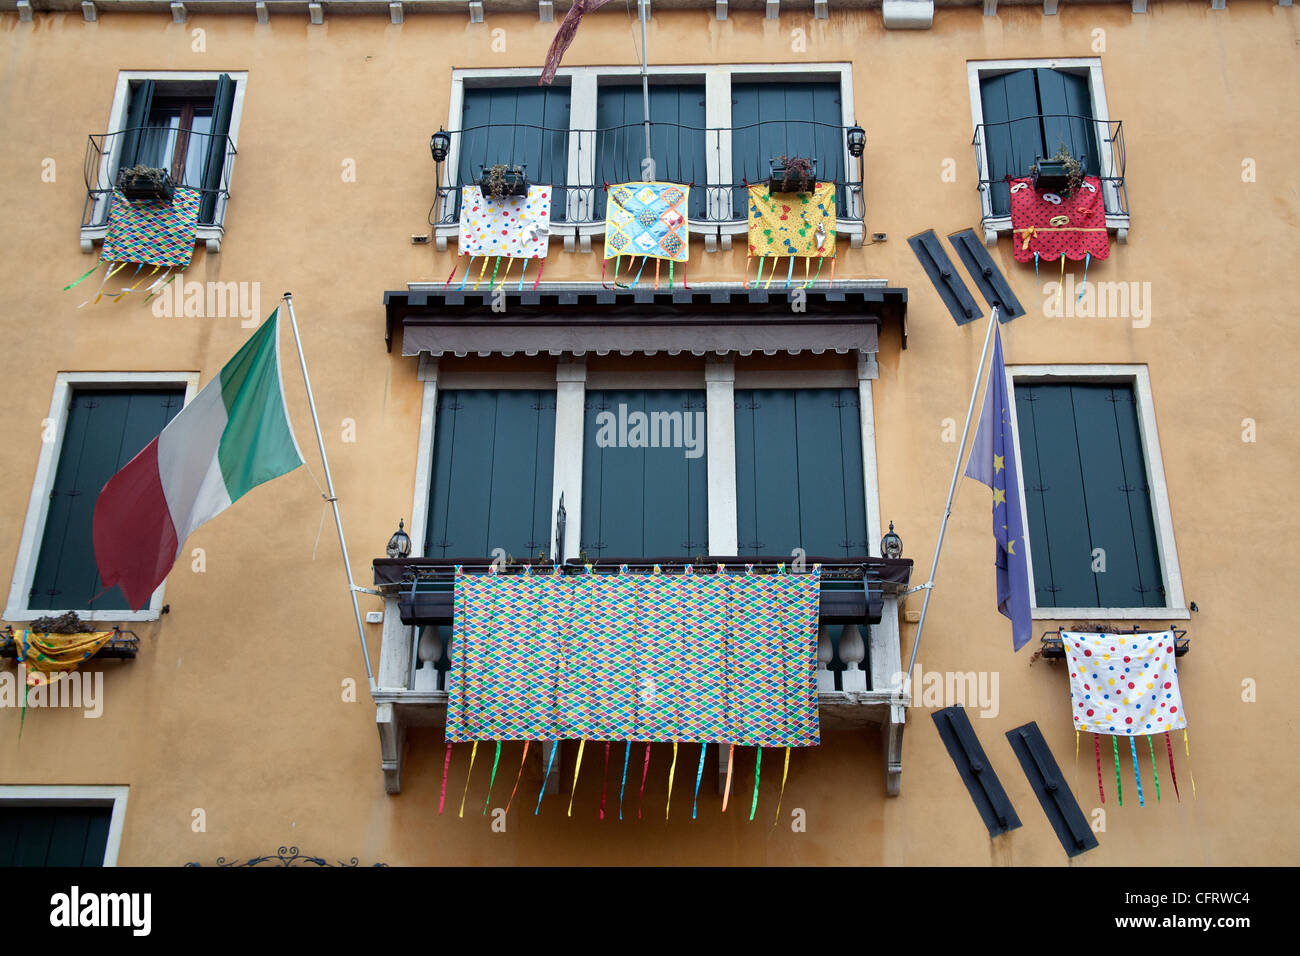 Carnival decorations hanging from the windows of the Hotel Ala, Venice Italy - Stock Image